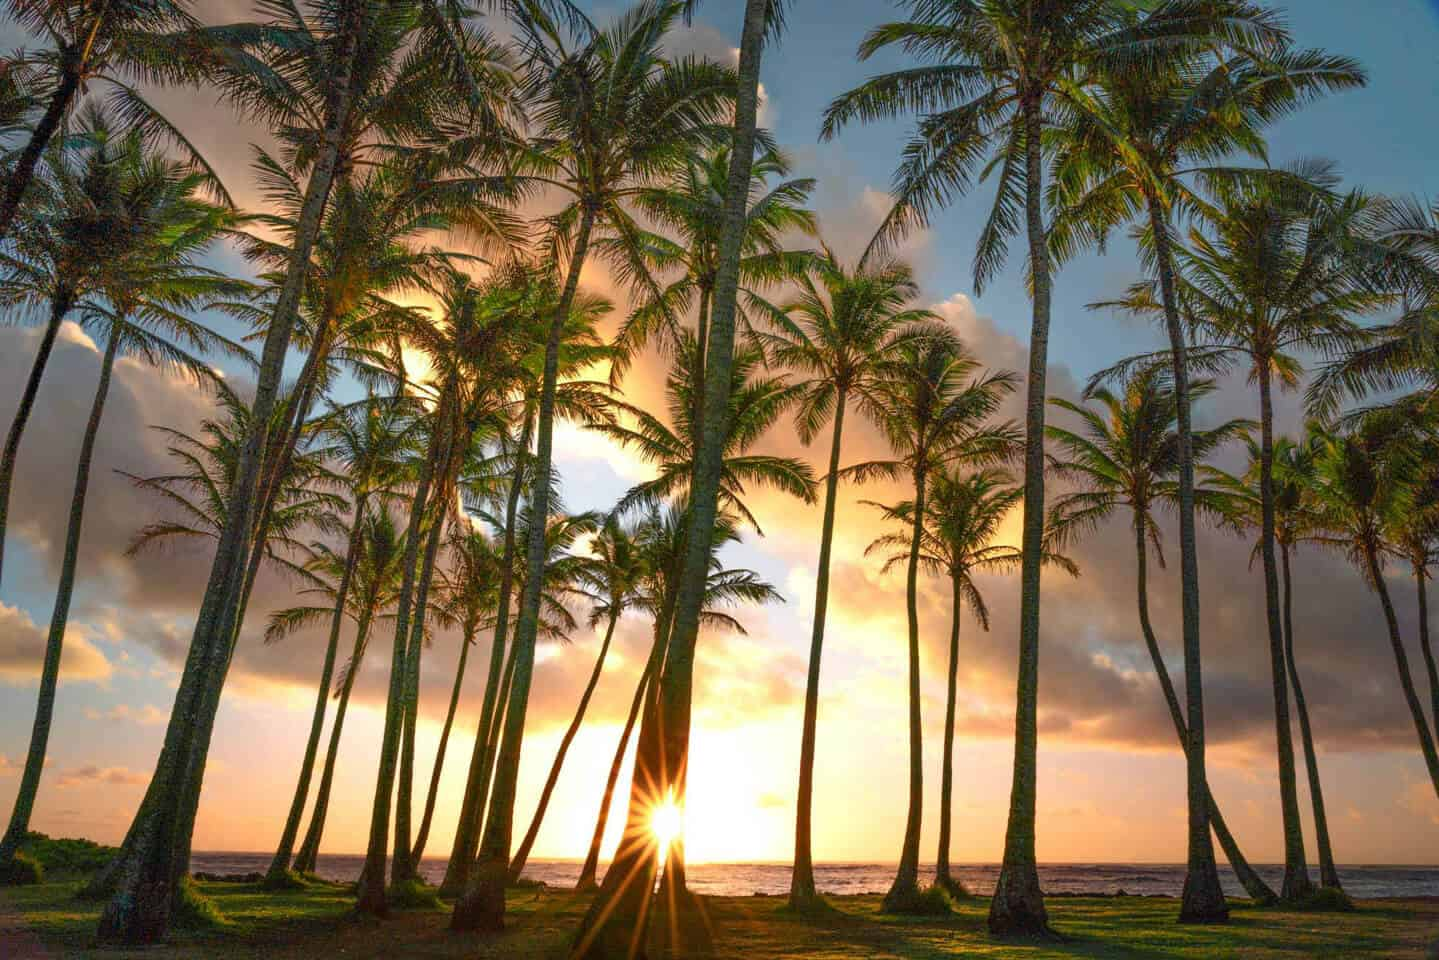 A postcard-perfect sunrise from a palm tree grove in Kapa'a.